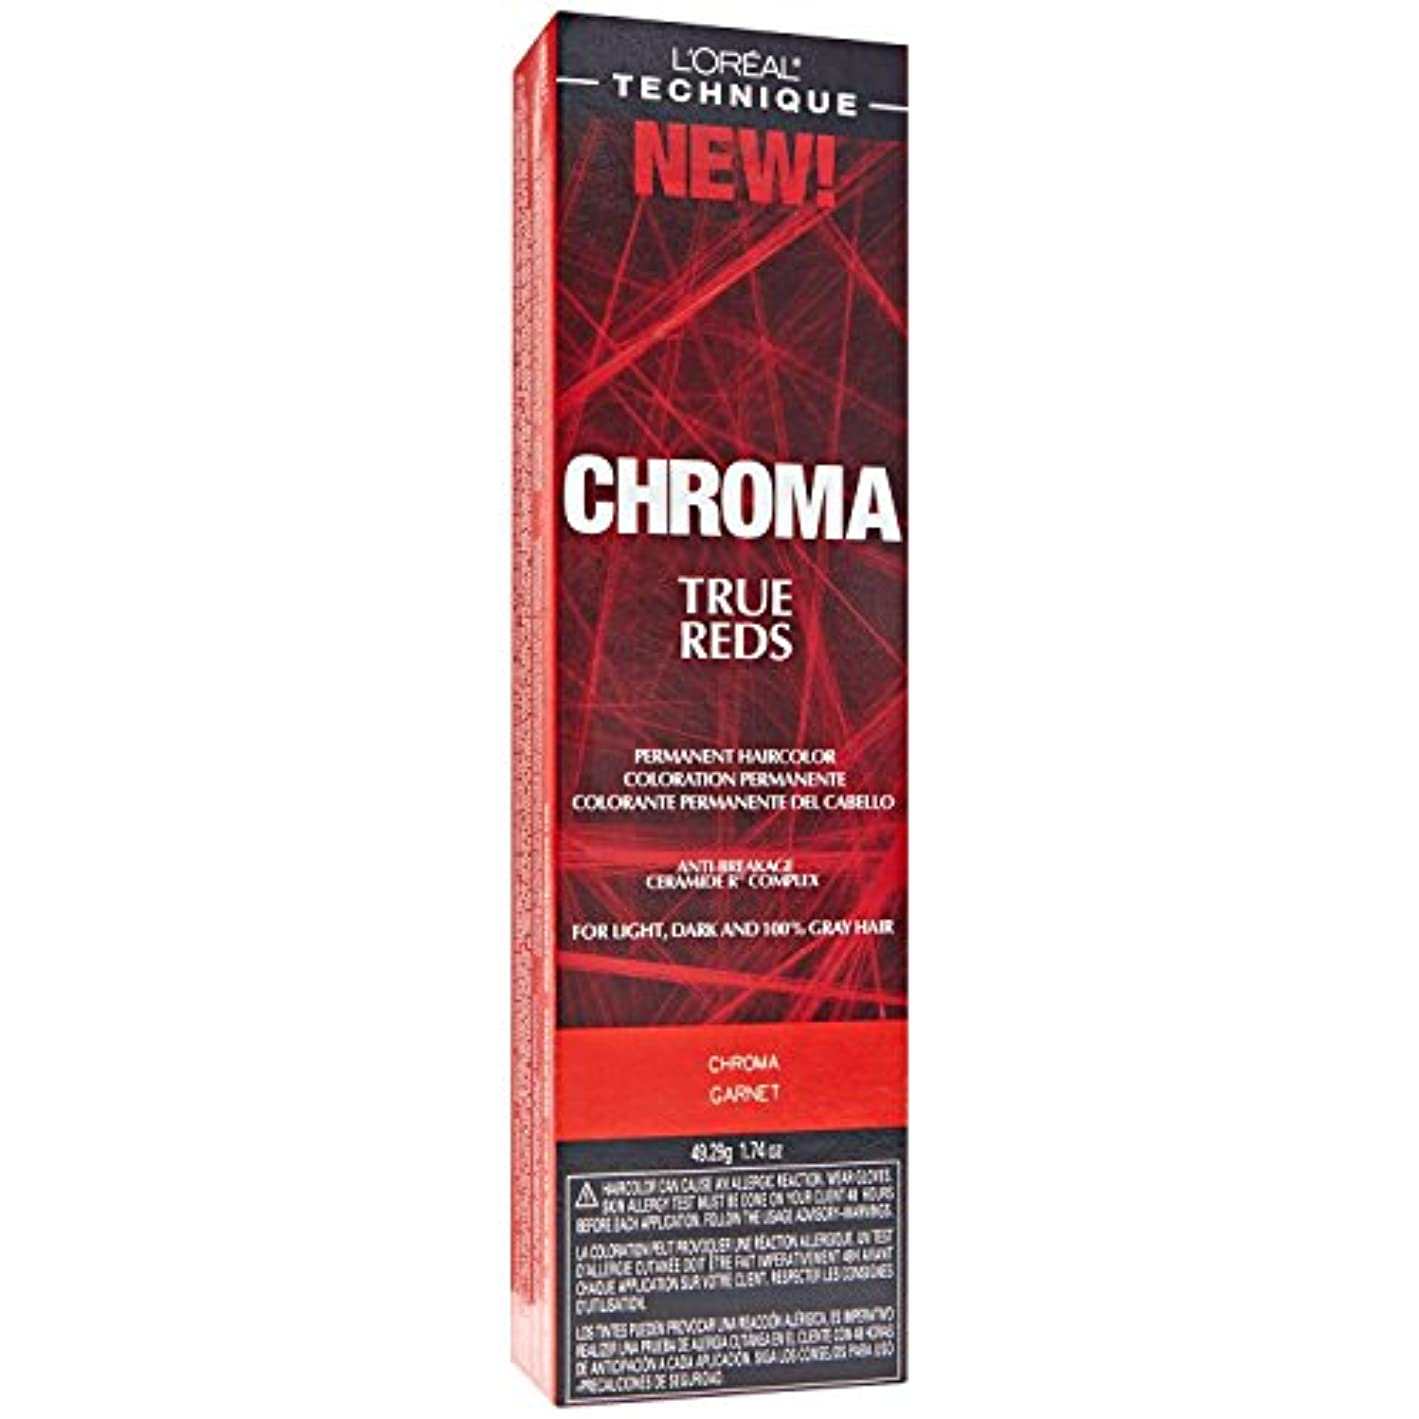 登録バース気を散らすL'Oreal Technique Chroma True Reds - Chroma Garnet - 1.74oz / 49.29g